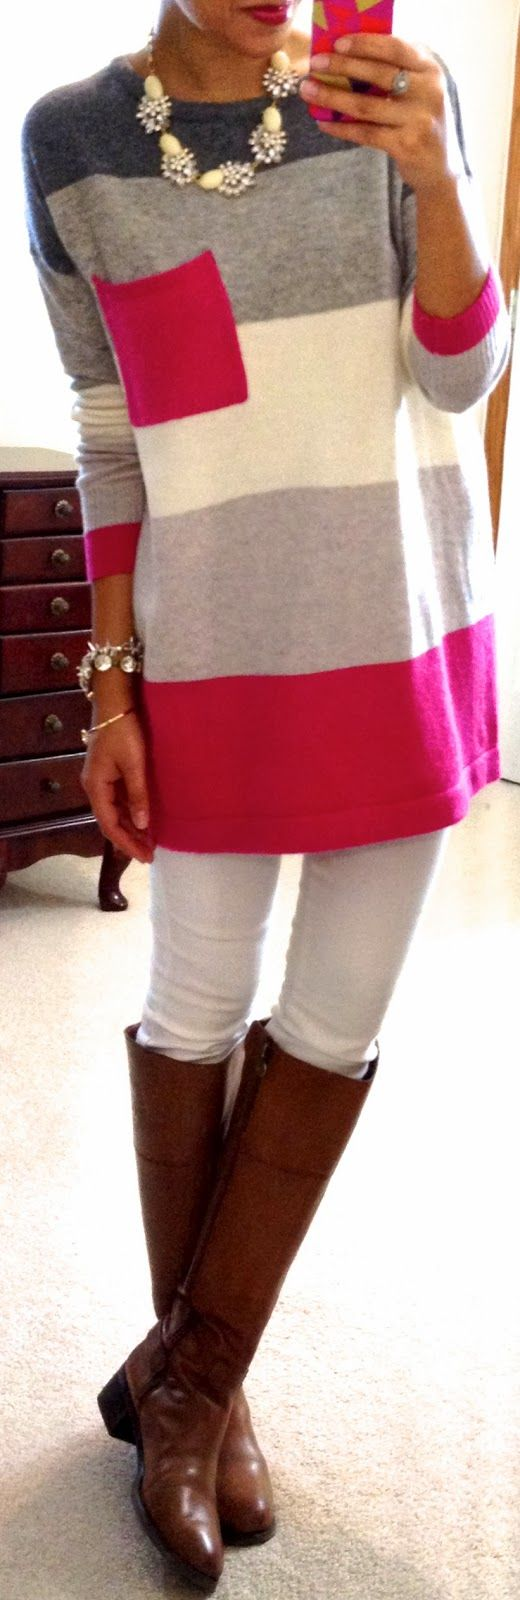 It's casual outfit. Maybe for work on Fridays in spring? Possibly minus the boots?